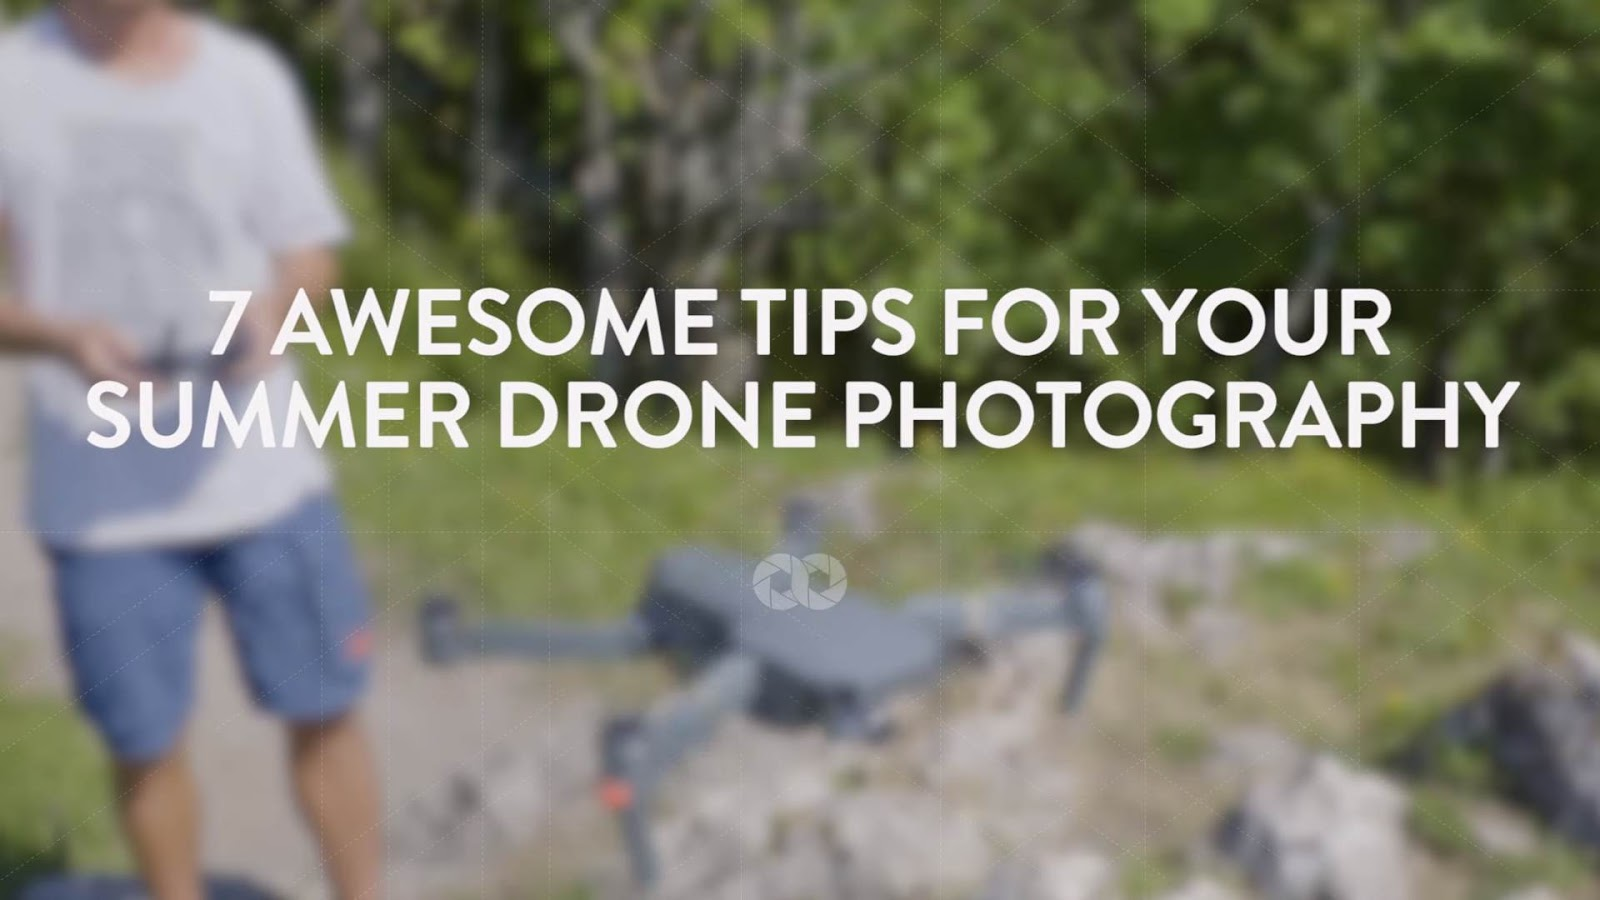 7 Awesome Tips for your Summer Drone Photography